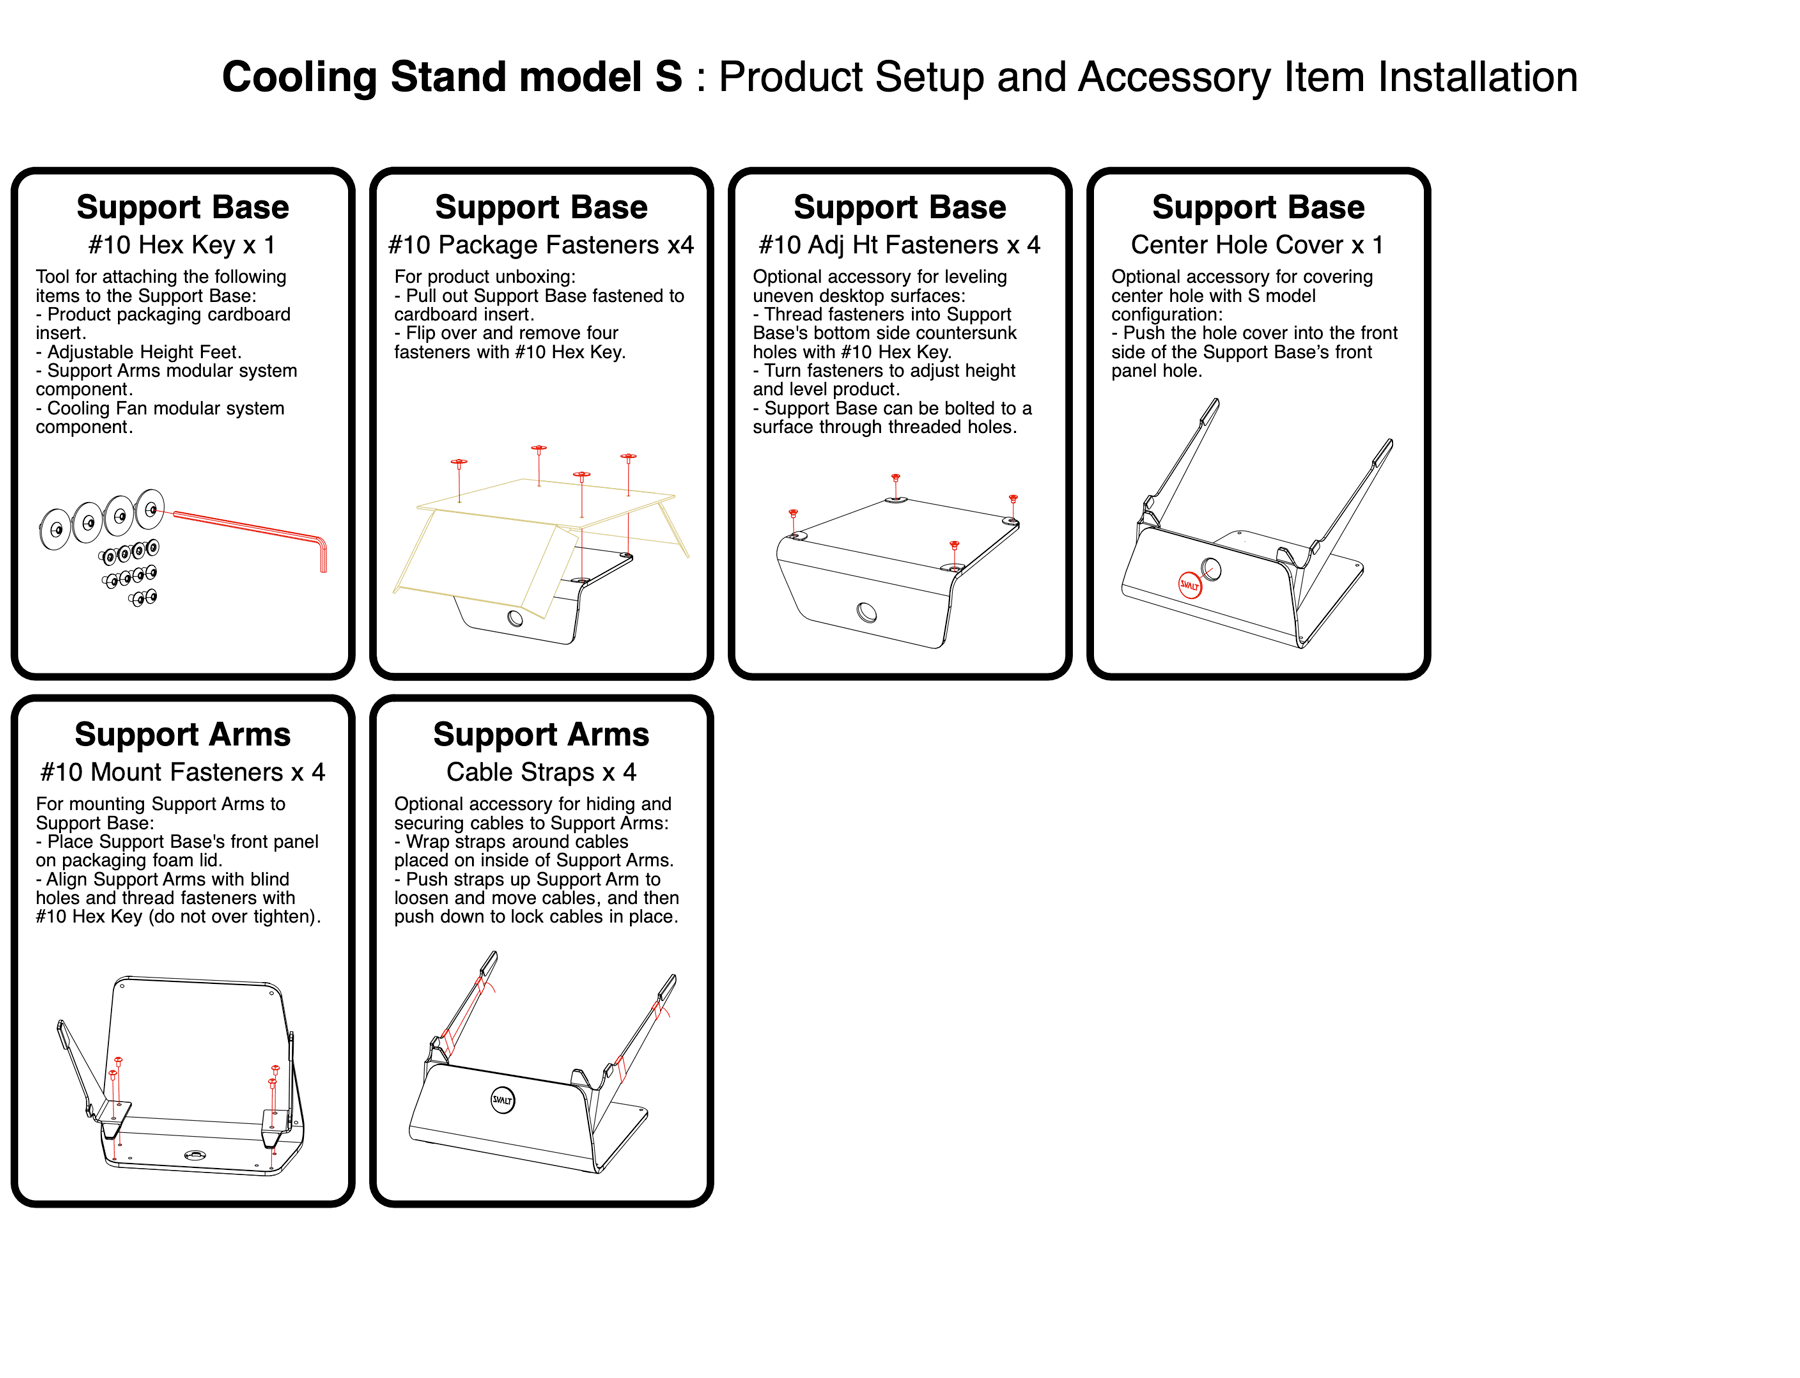 SVALT Cooling Stand model S setup and accessory installation